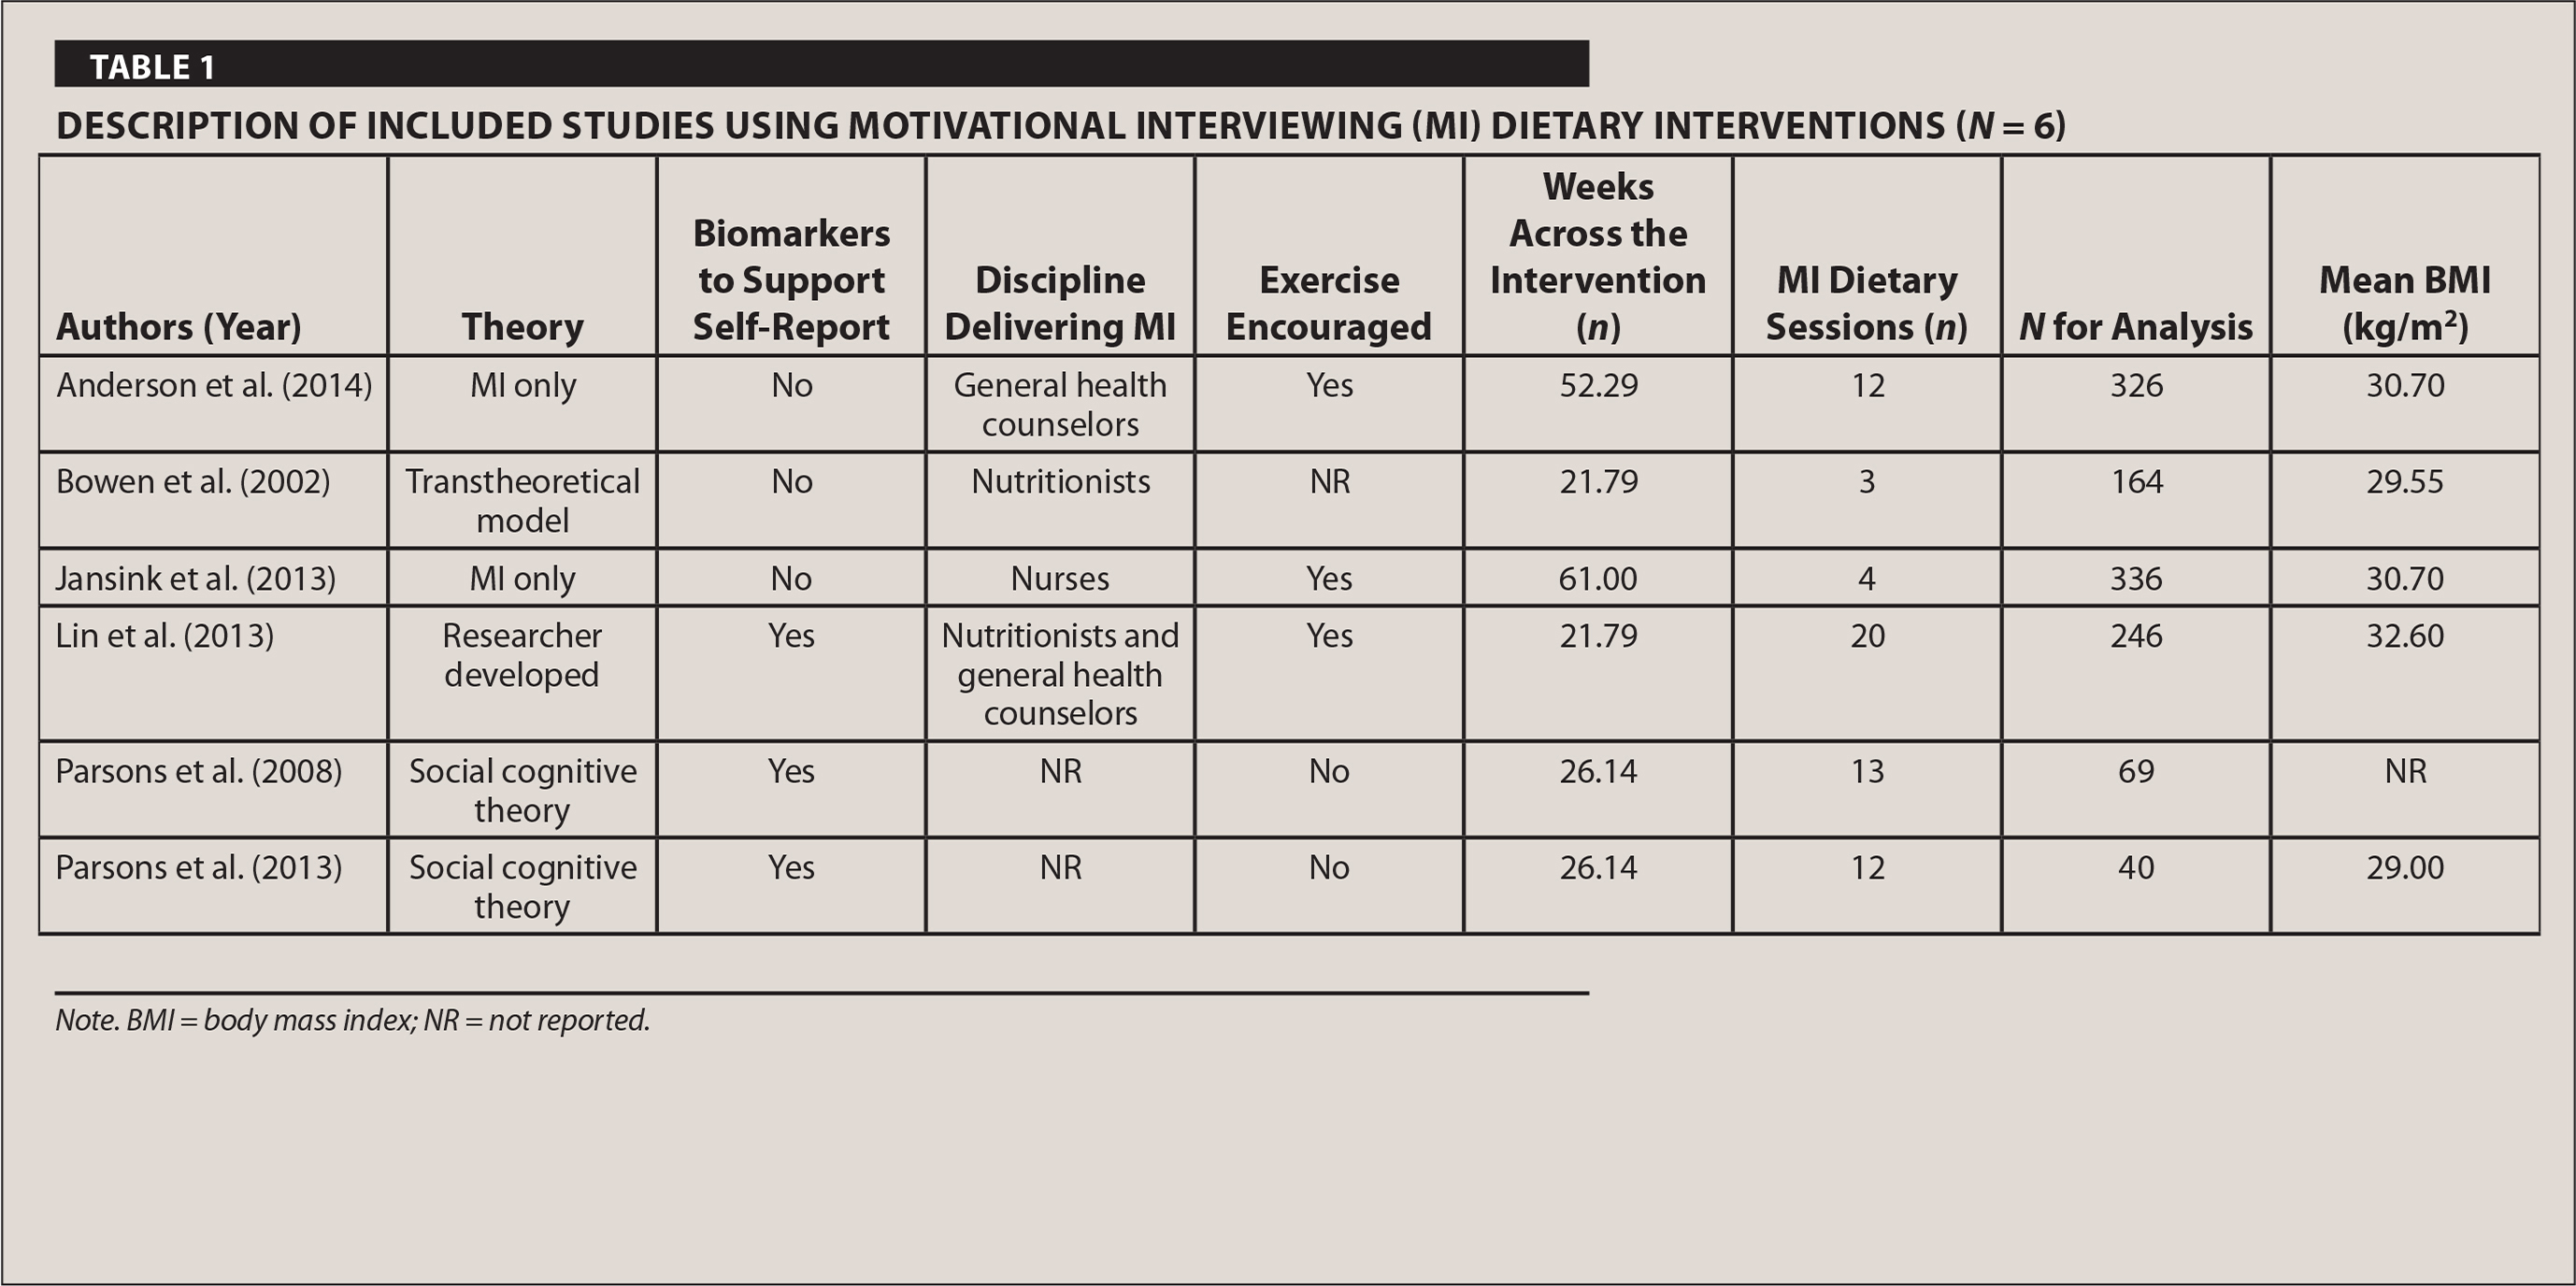 Description of Included Studies Using Motivational Interviewing (MI) Dietary Interventions (N = 6)